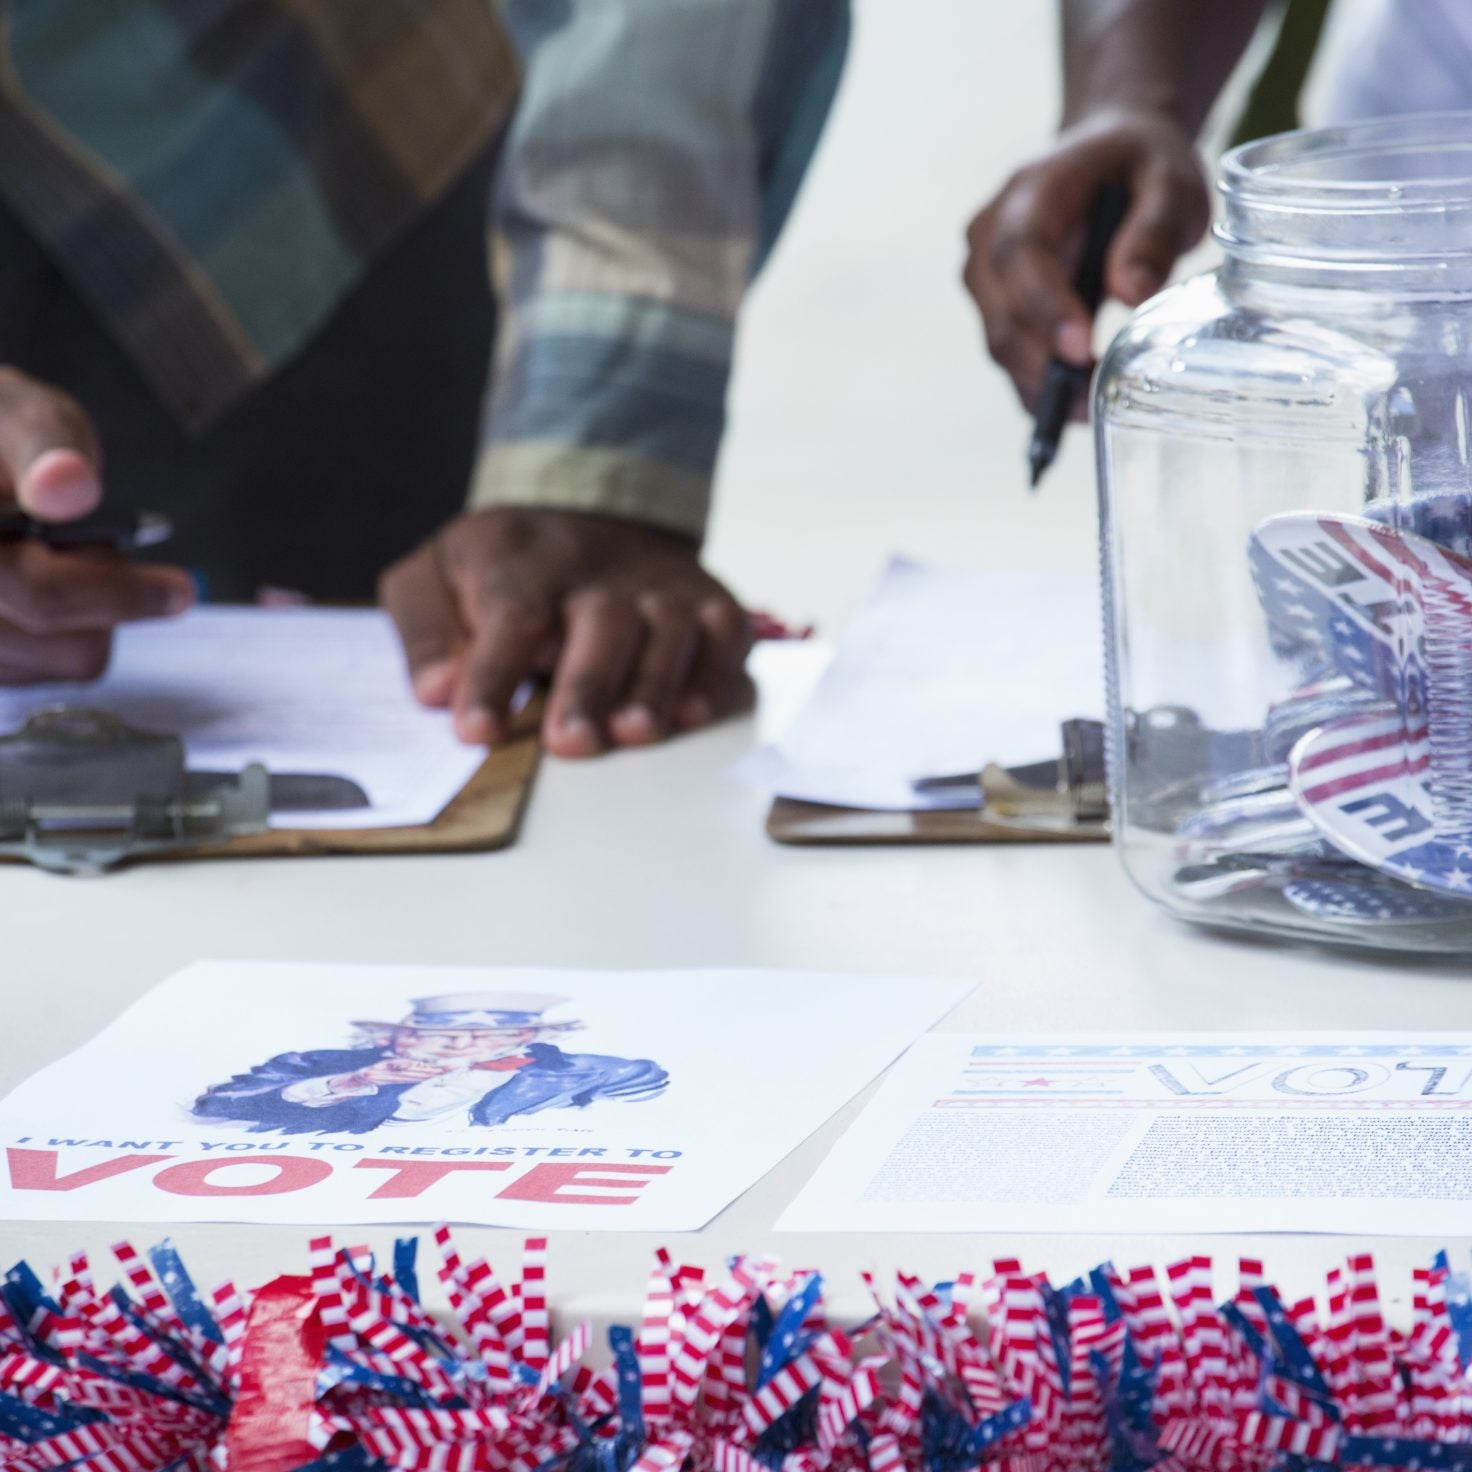 New Poll Shows Black Voters Still Strongly Support Gun Violence Prevention